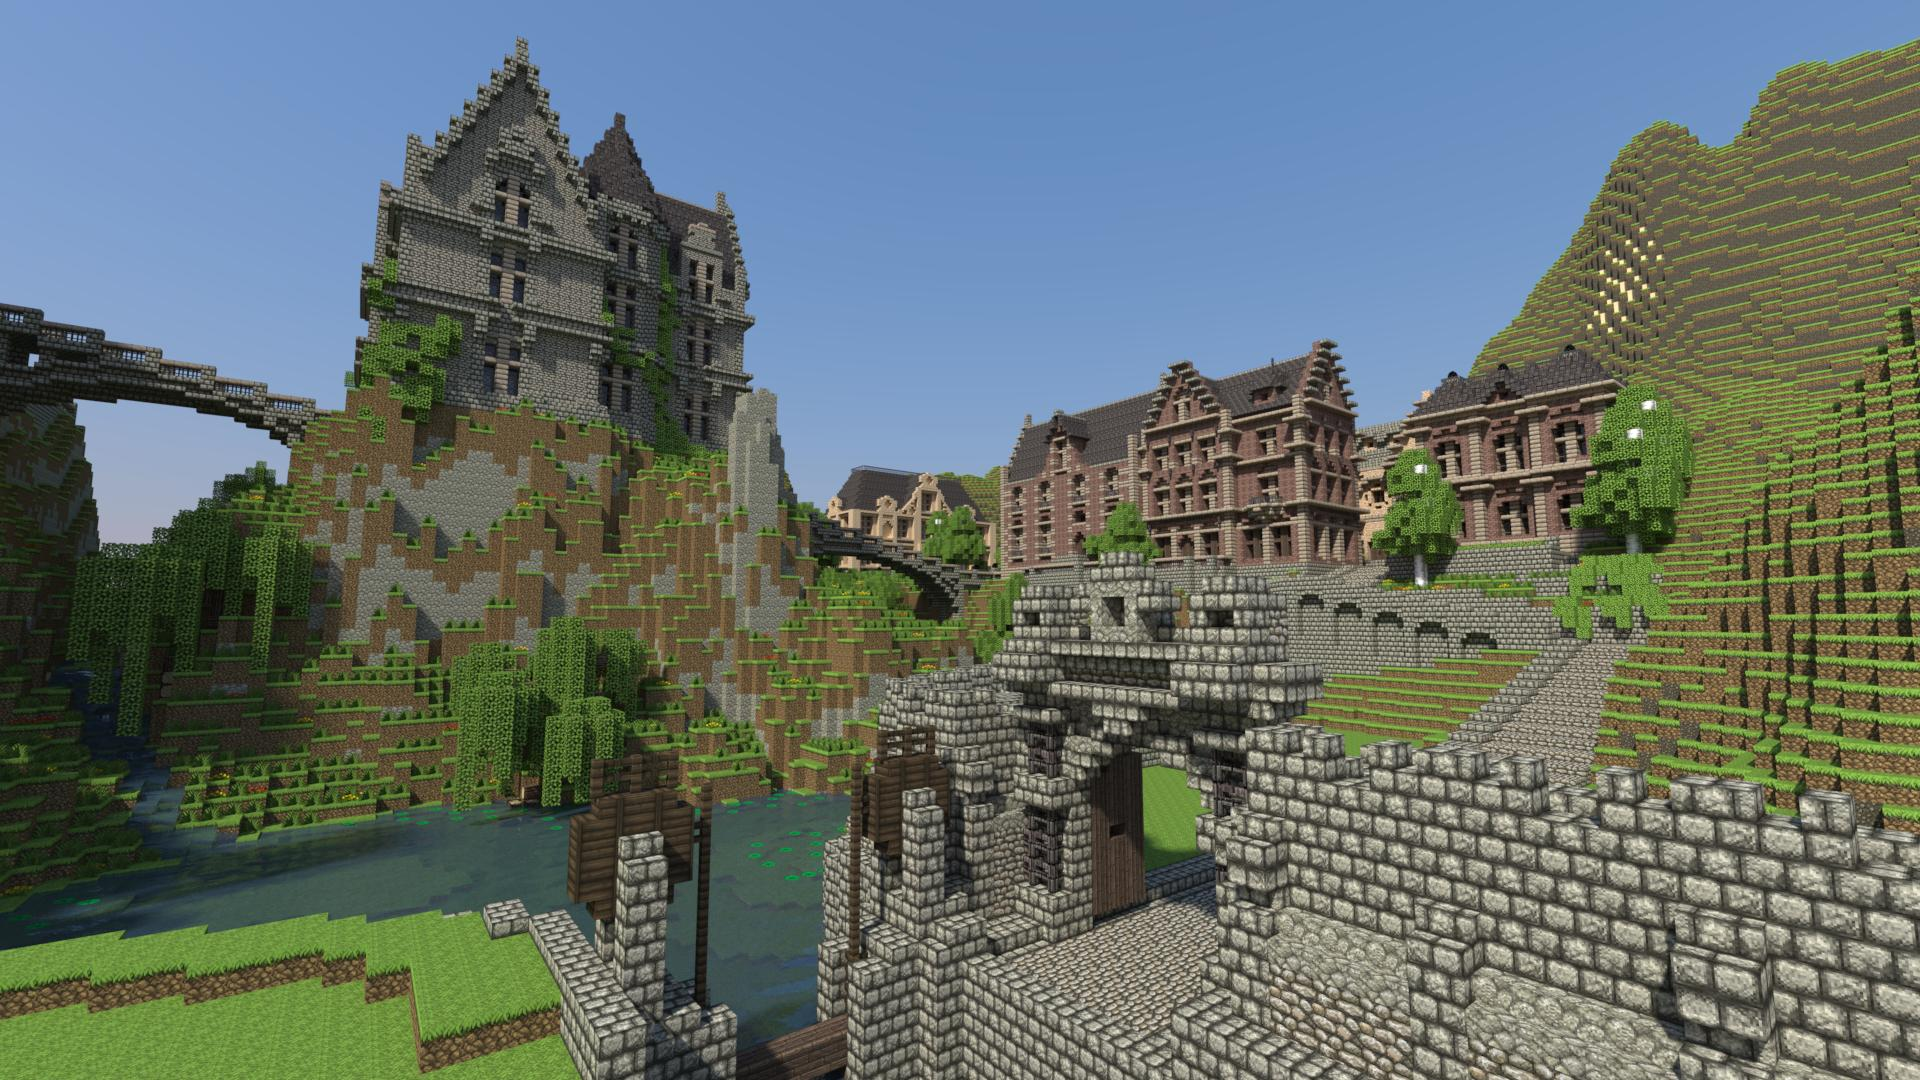 Minecraft Detailed City Overview 384.93 Kb